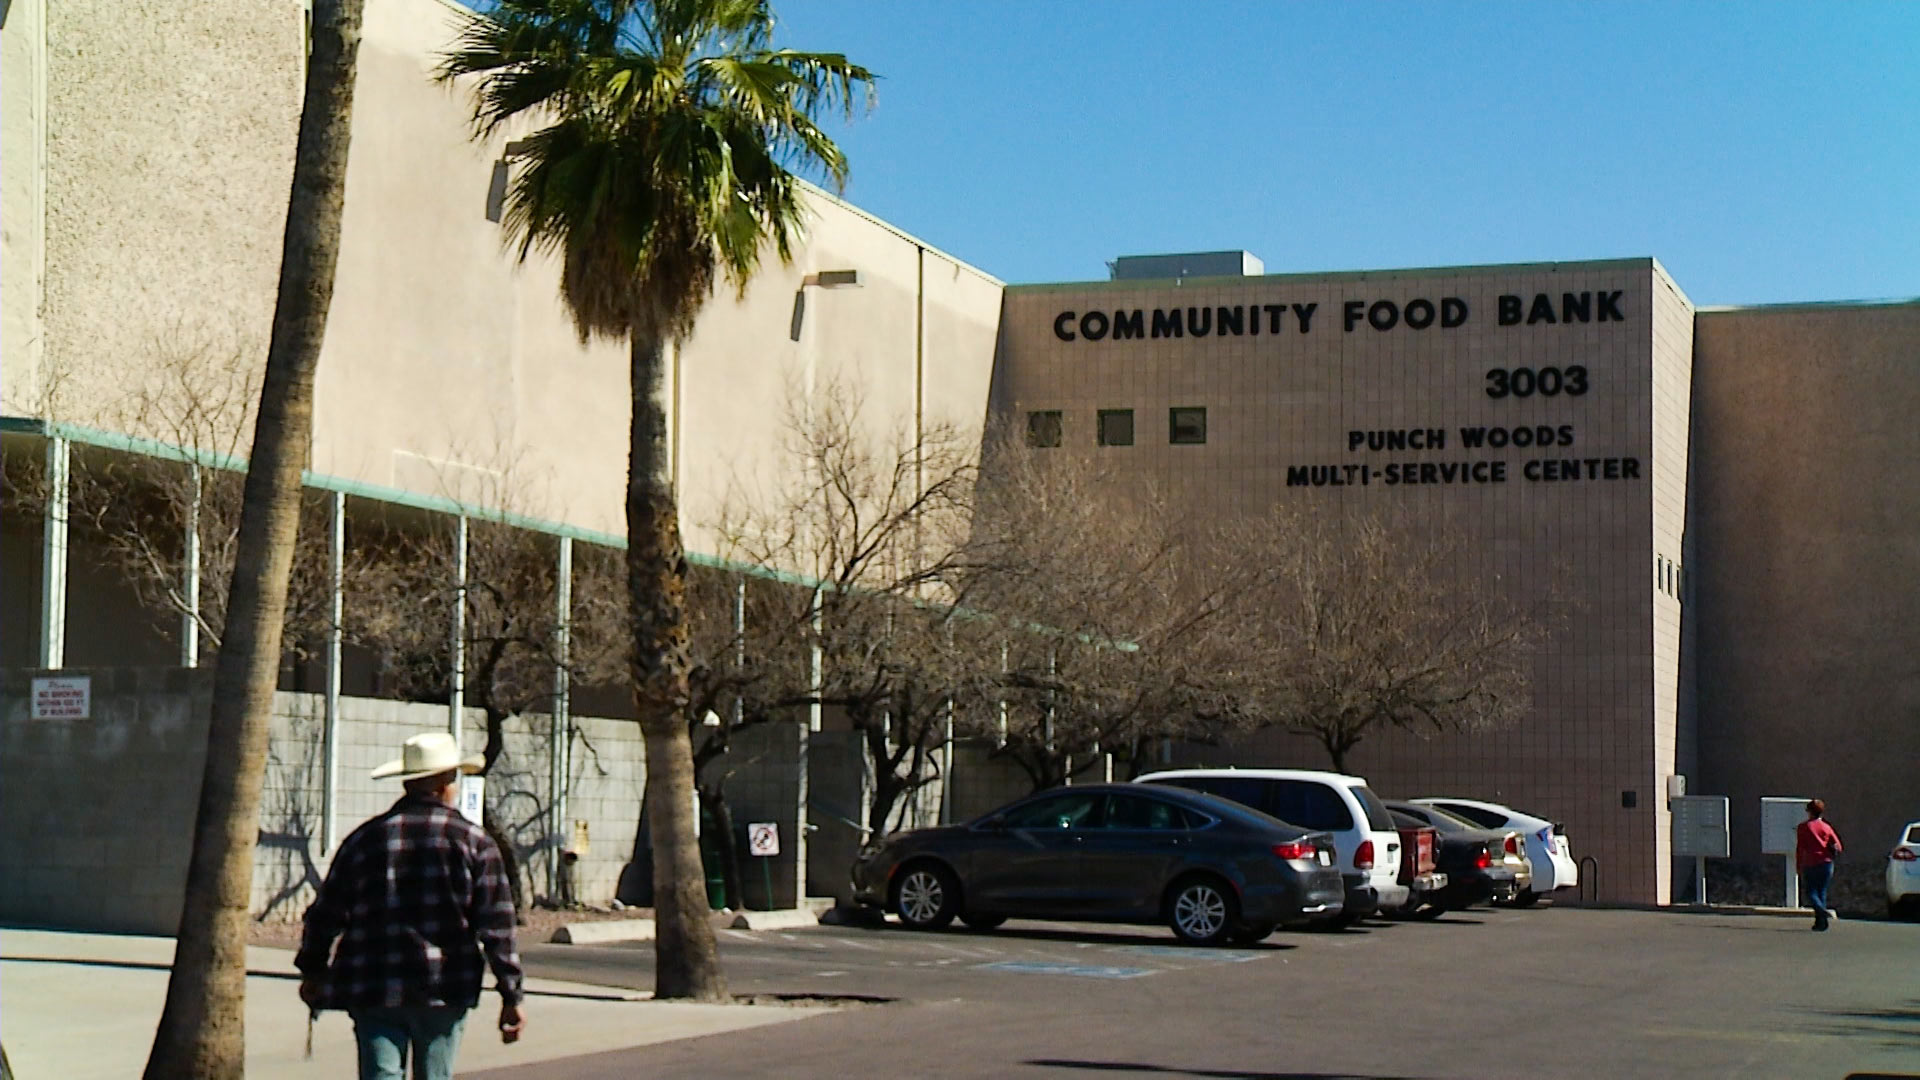 The main branch of the Community Food Bank of Southern Arizona.